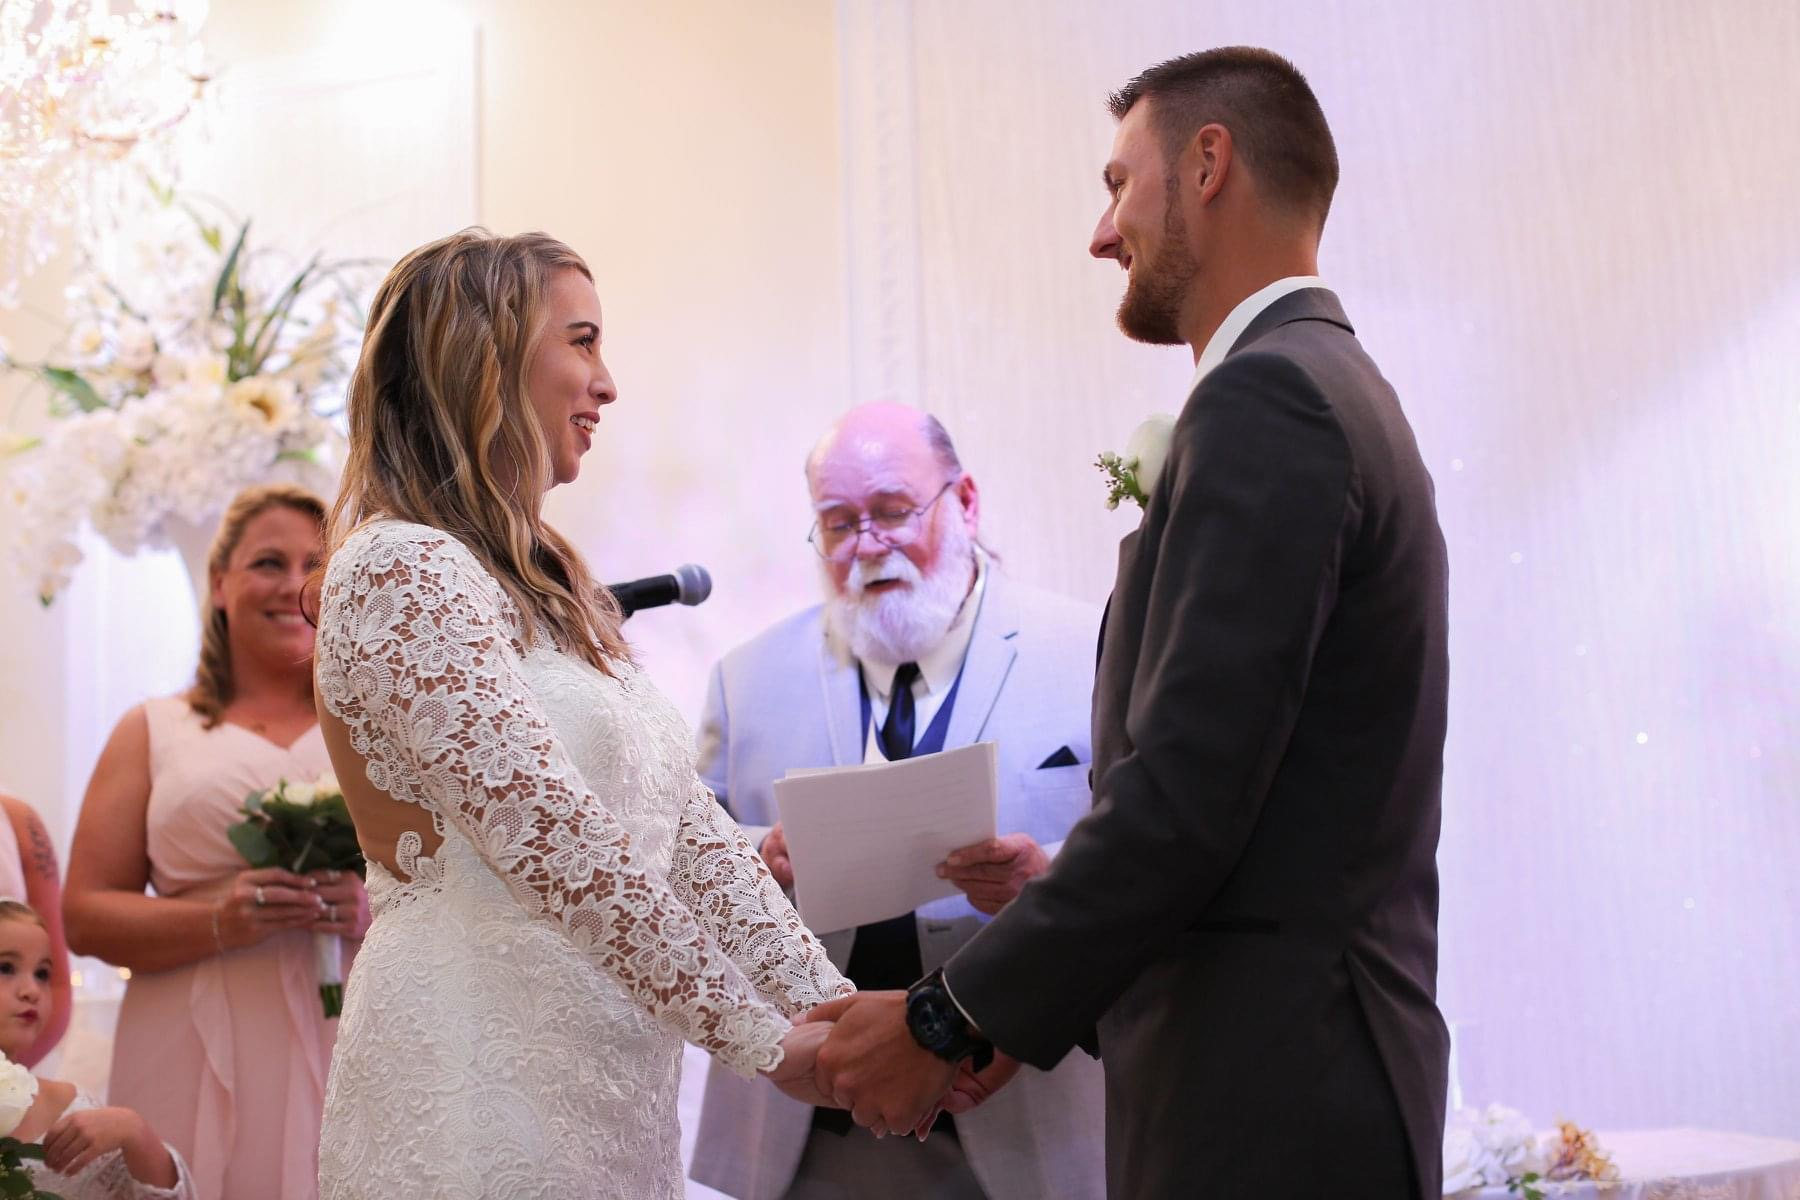 This was the most entertaining wedding I've ever been too. I loved that it was perfect in every way and you were a special part of that.  Rev. Amos